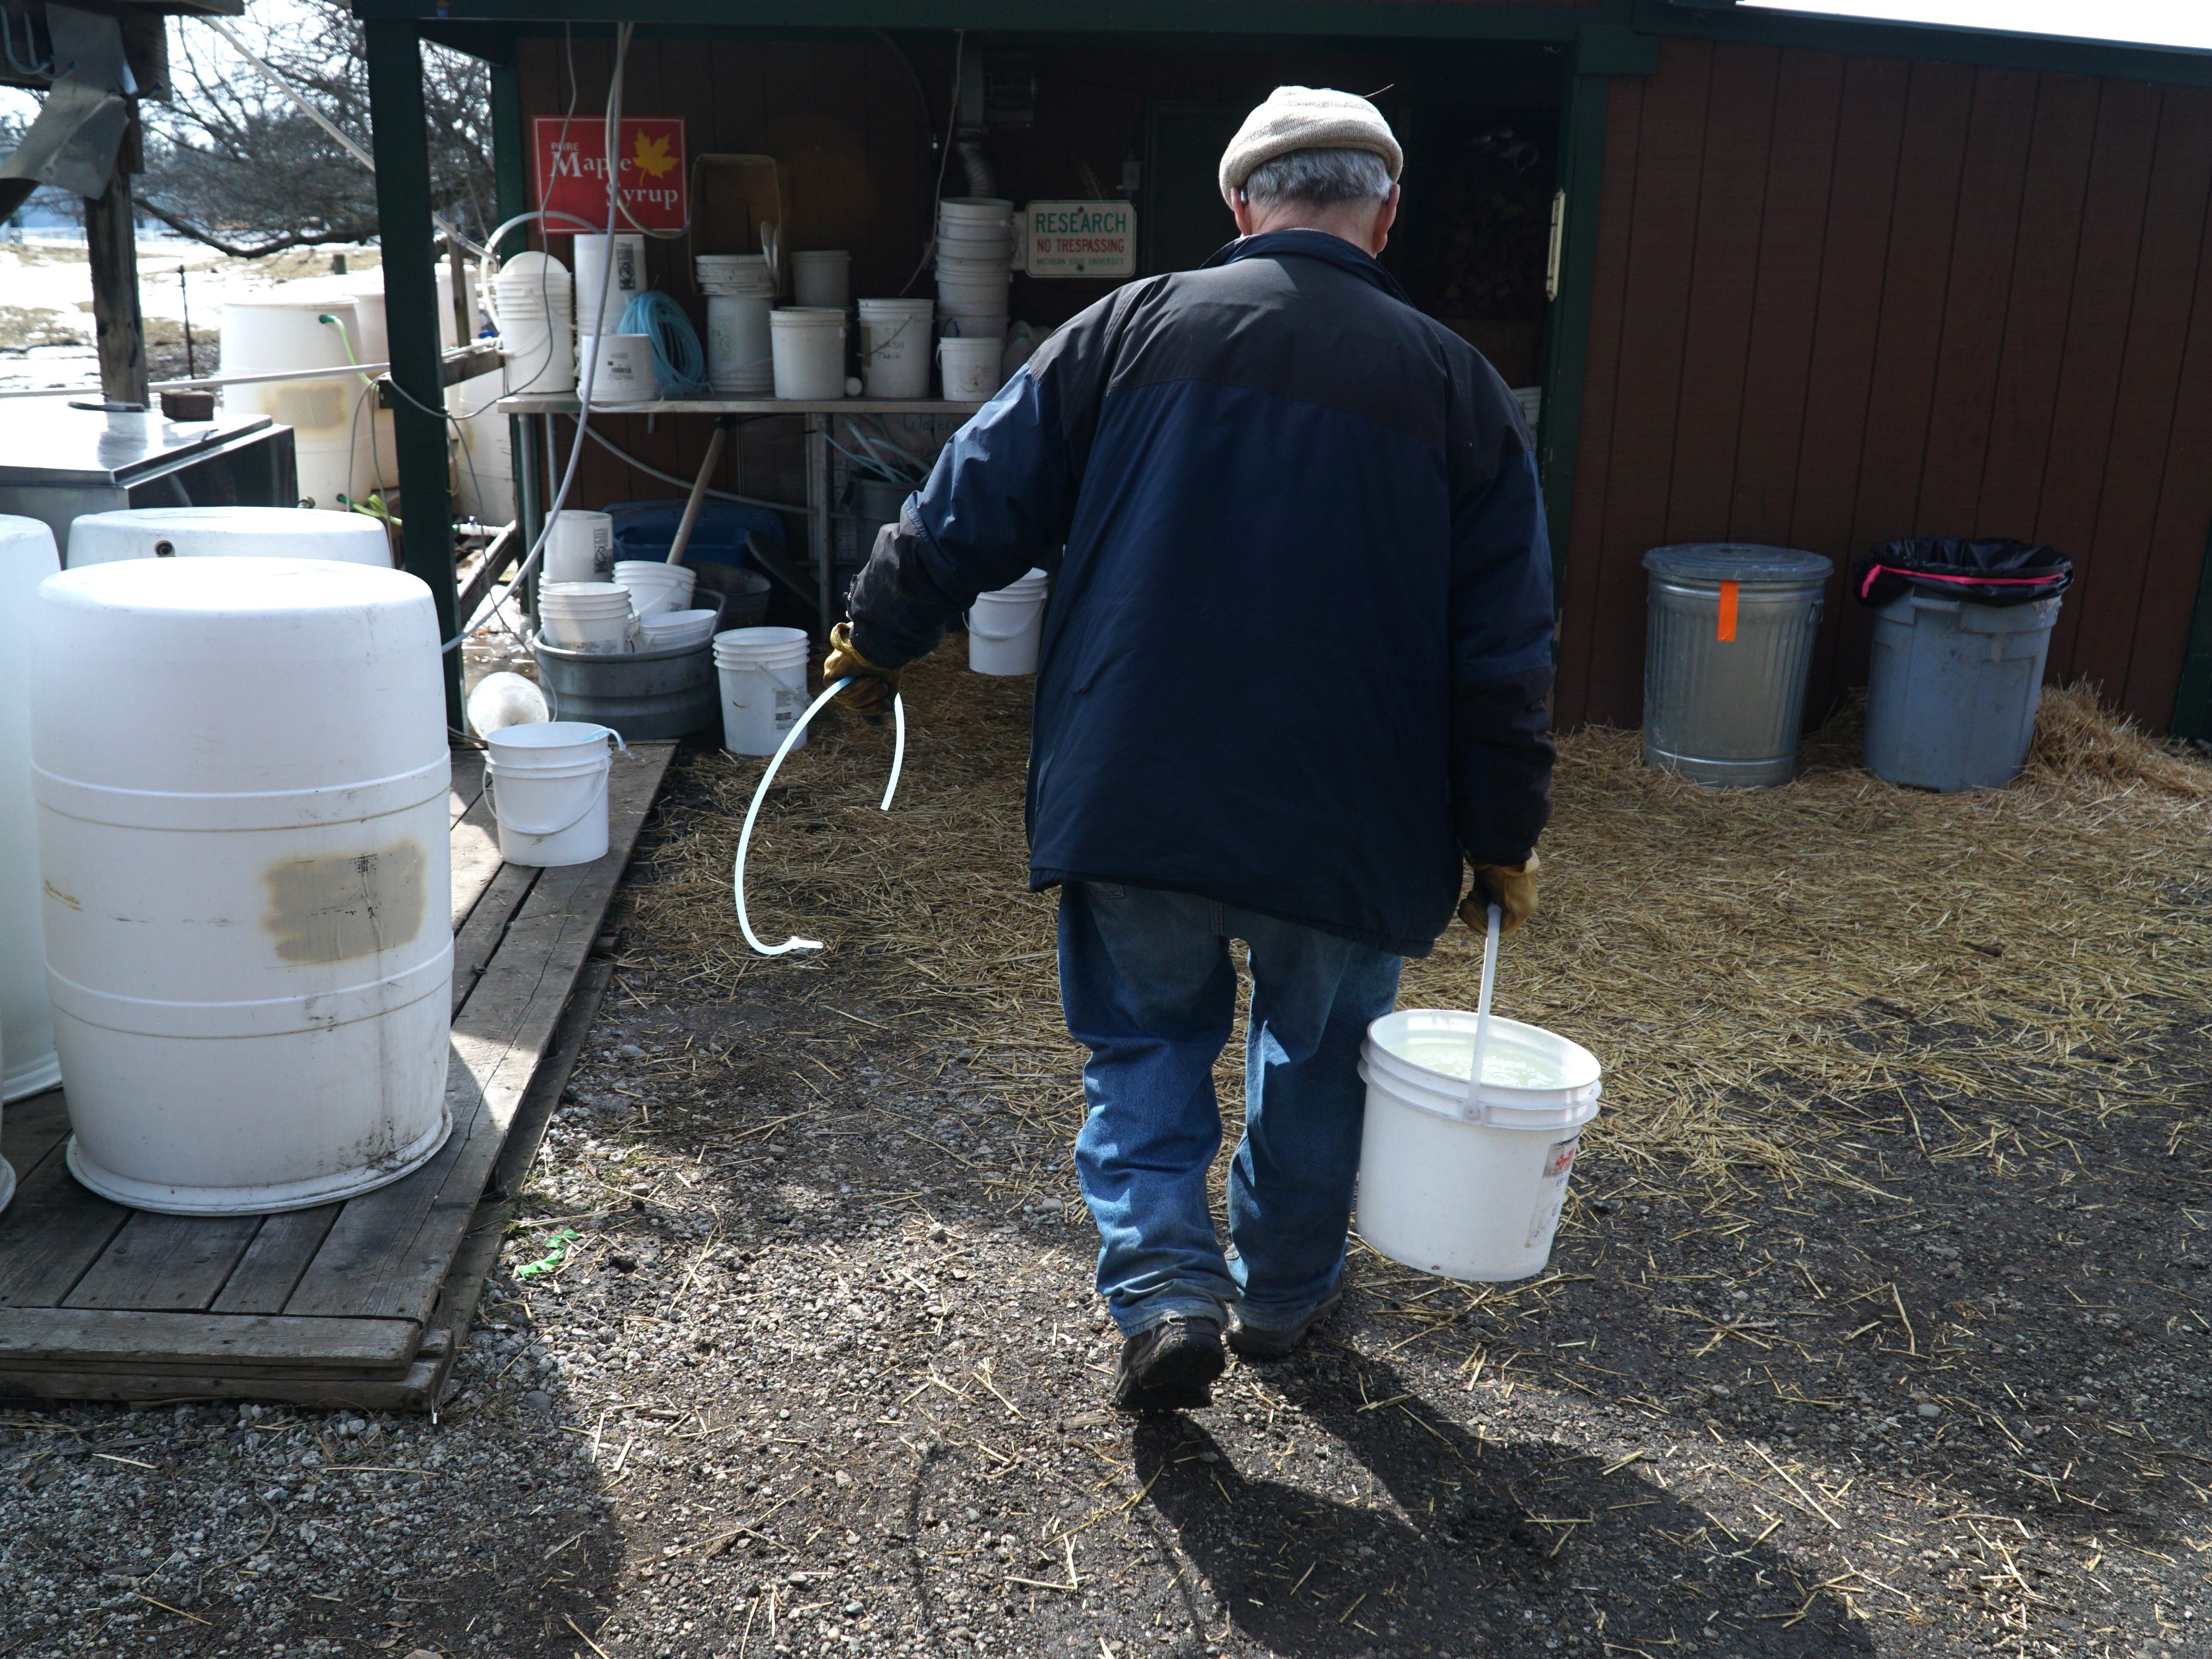 McInnis brings back one full bucket of sap to add to the sugar shack's (seen ahead of him) evaporator.